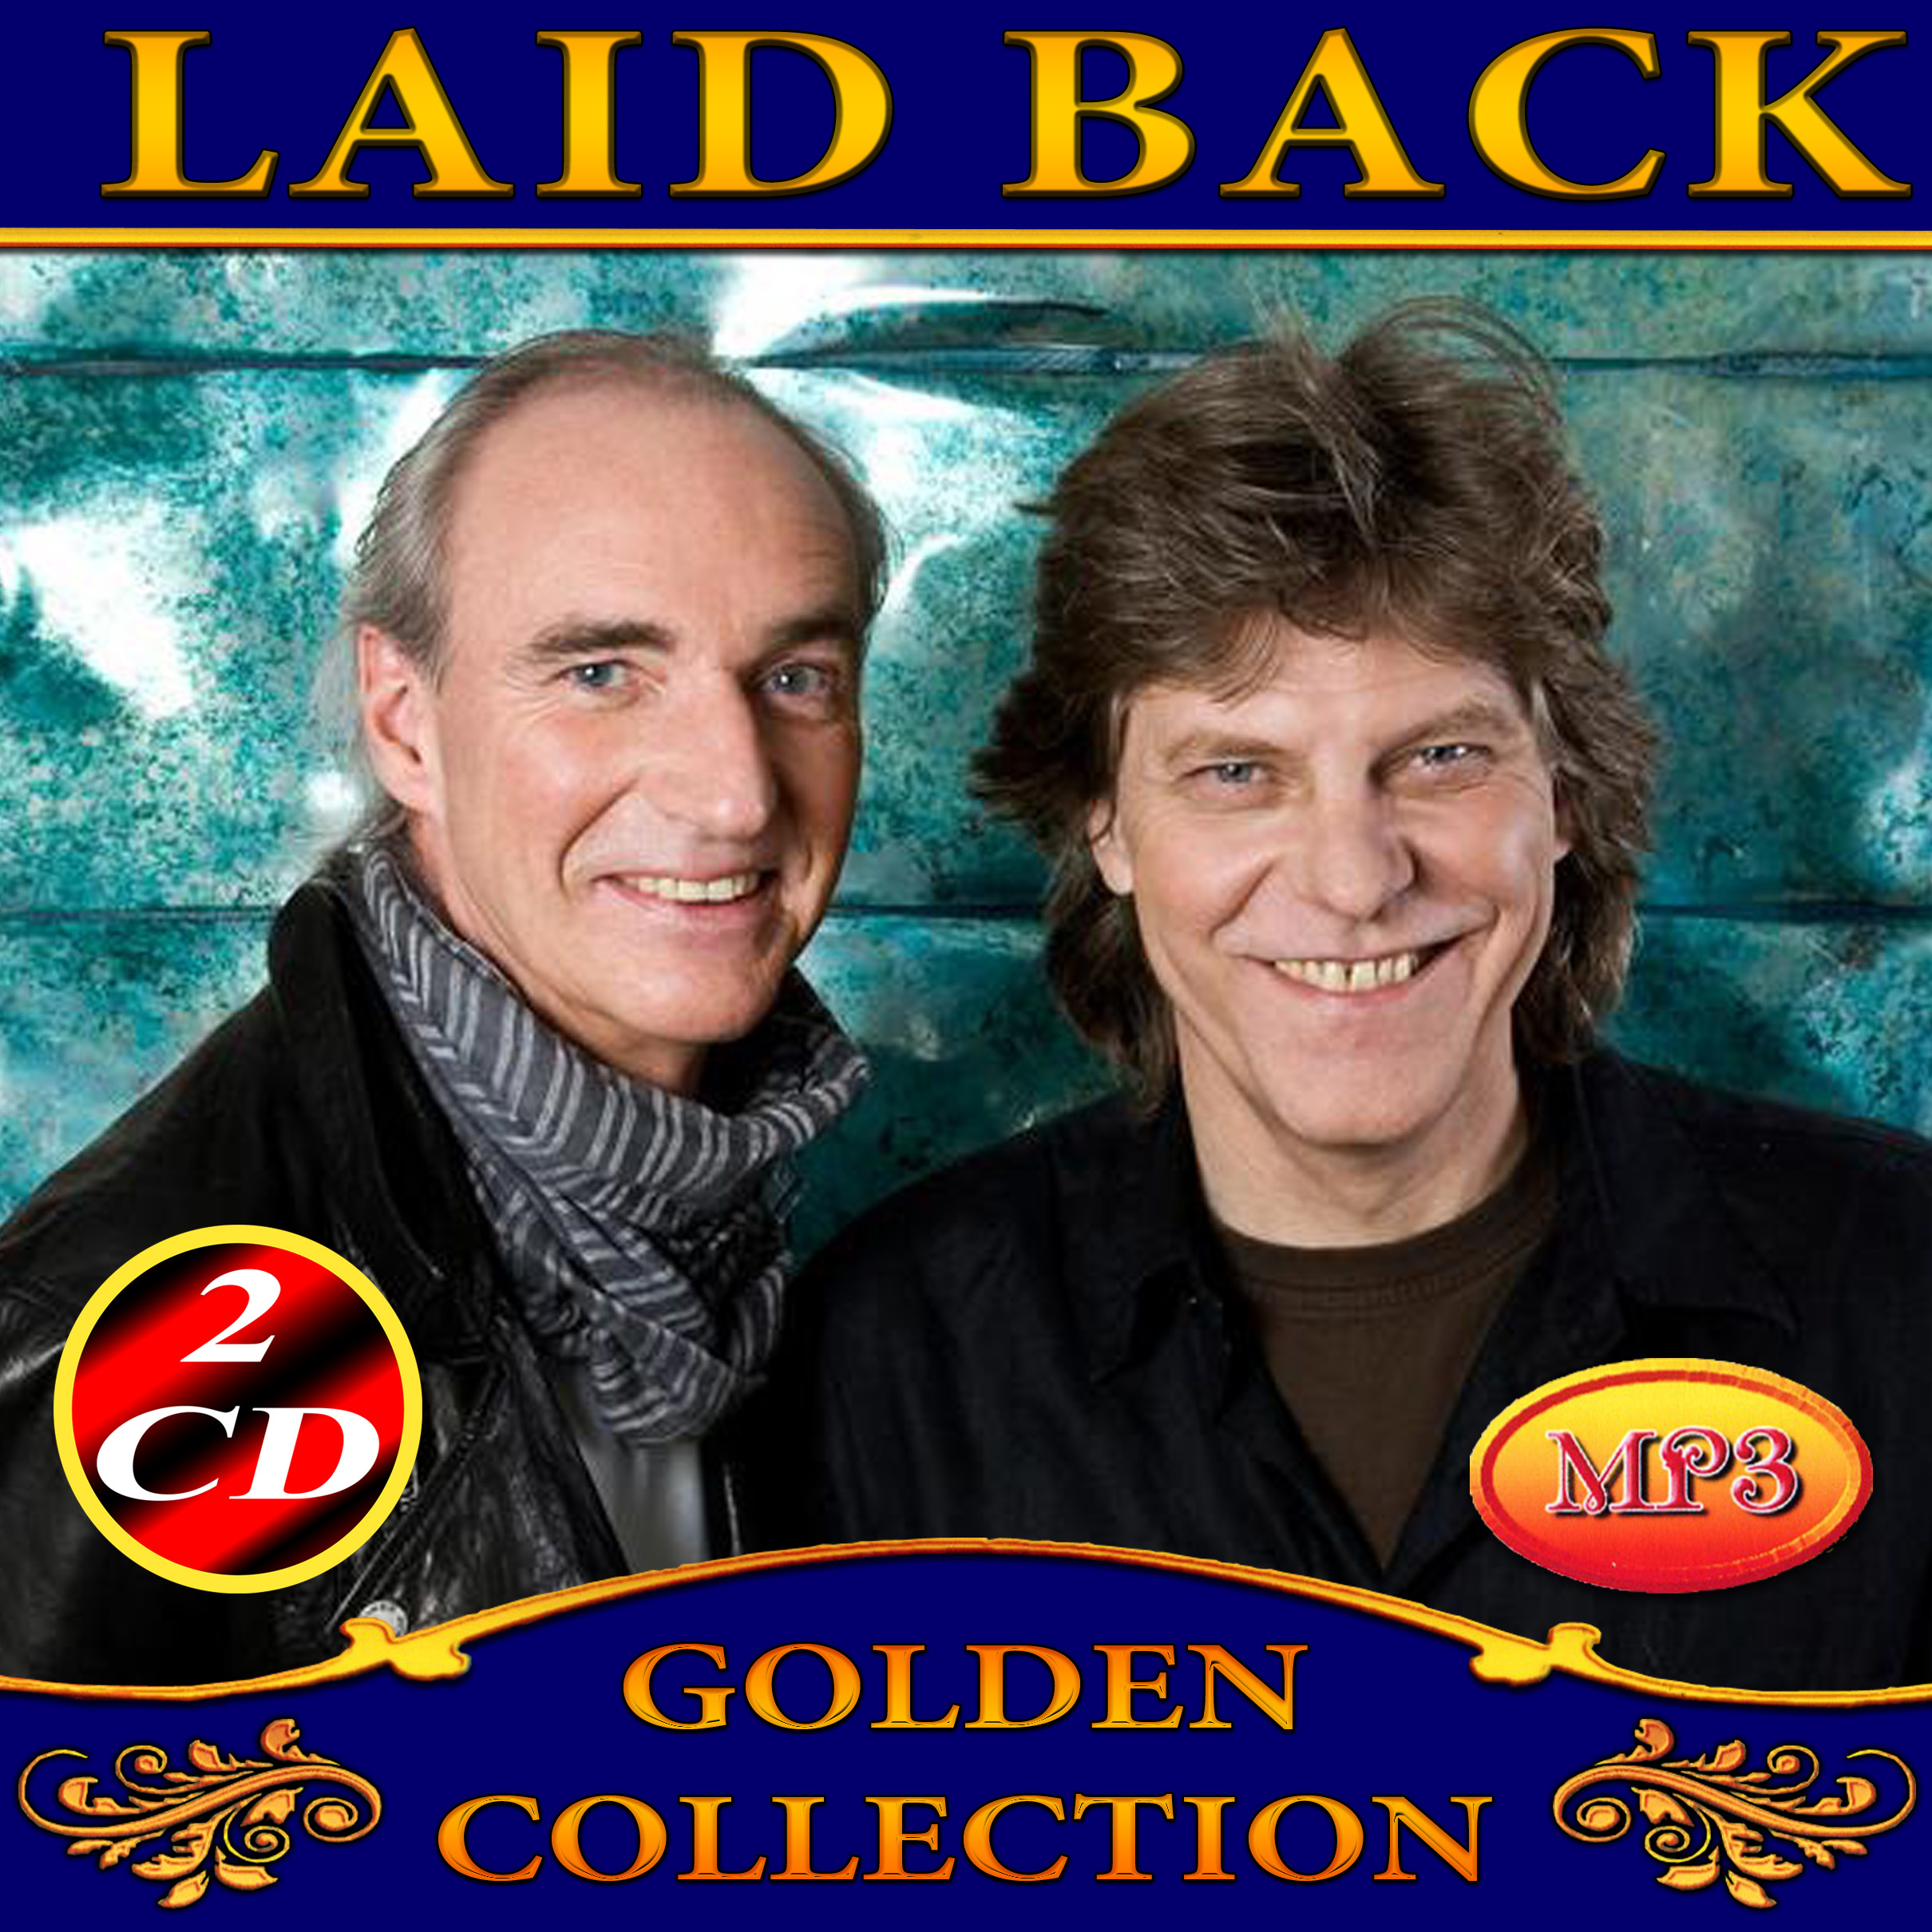 Laid Back 2cd [mp3]